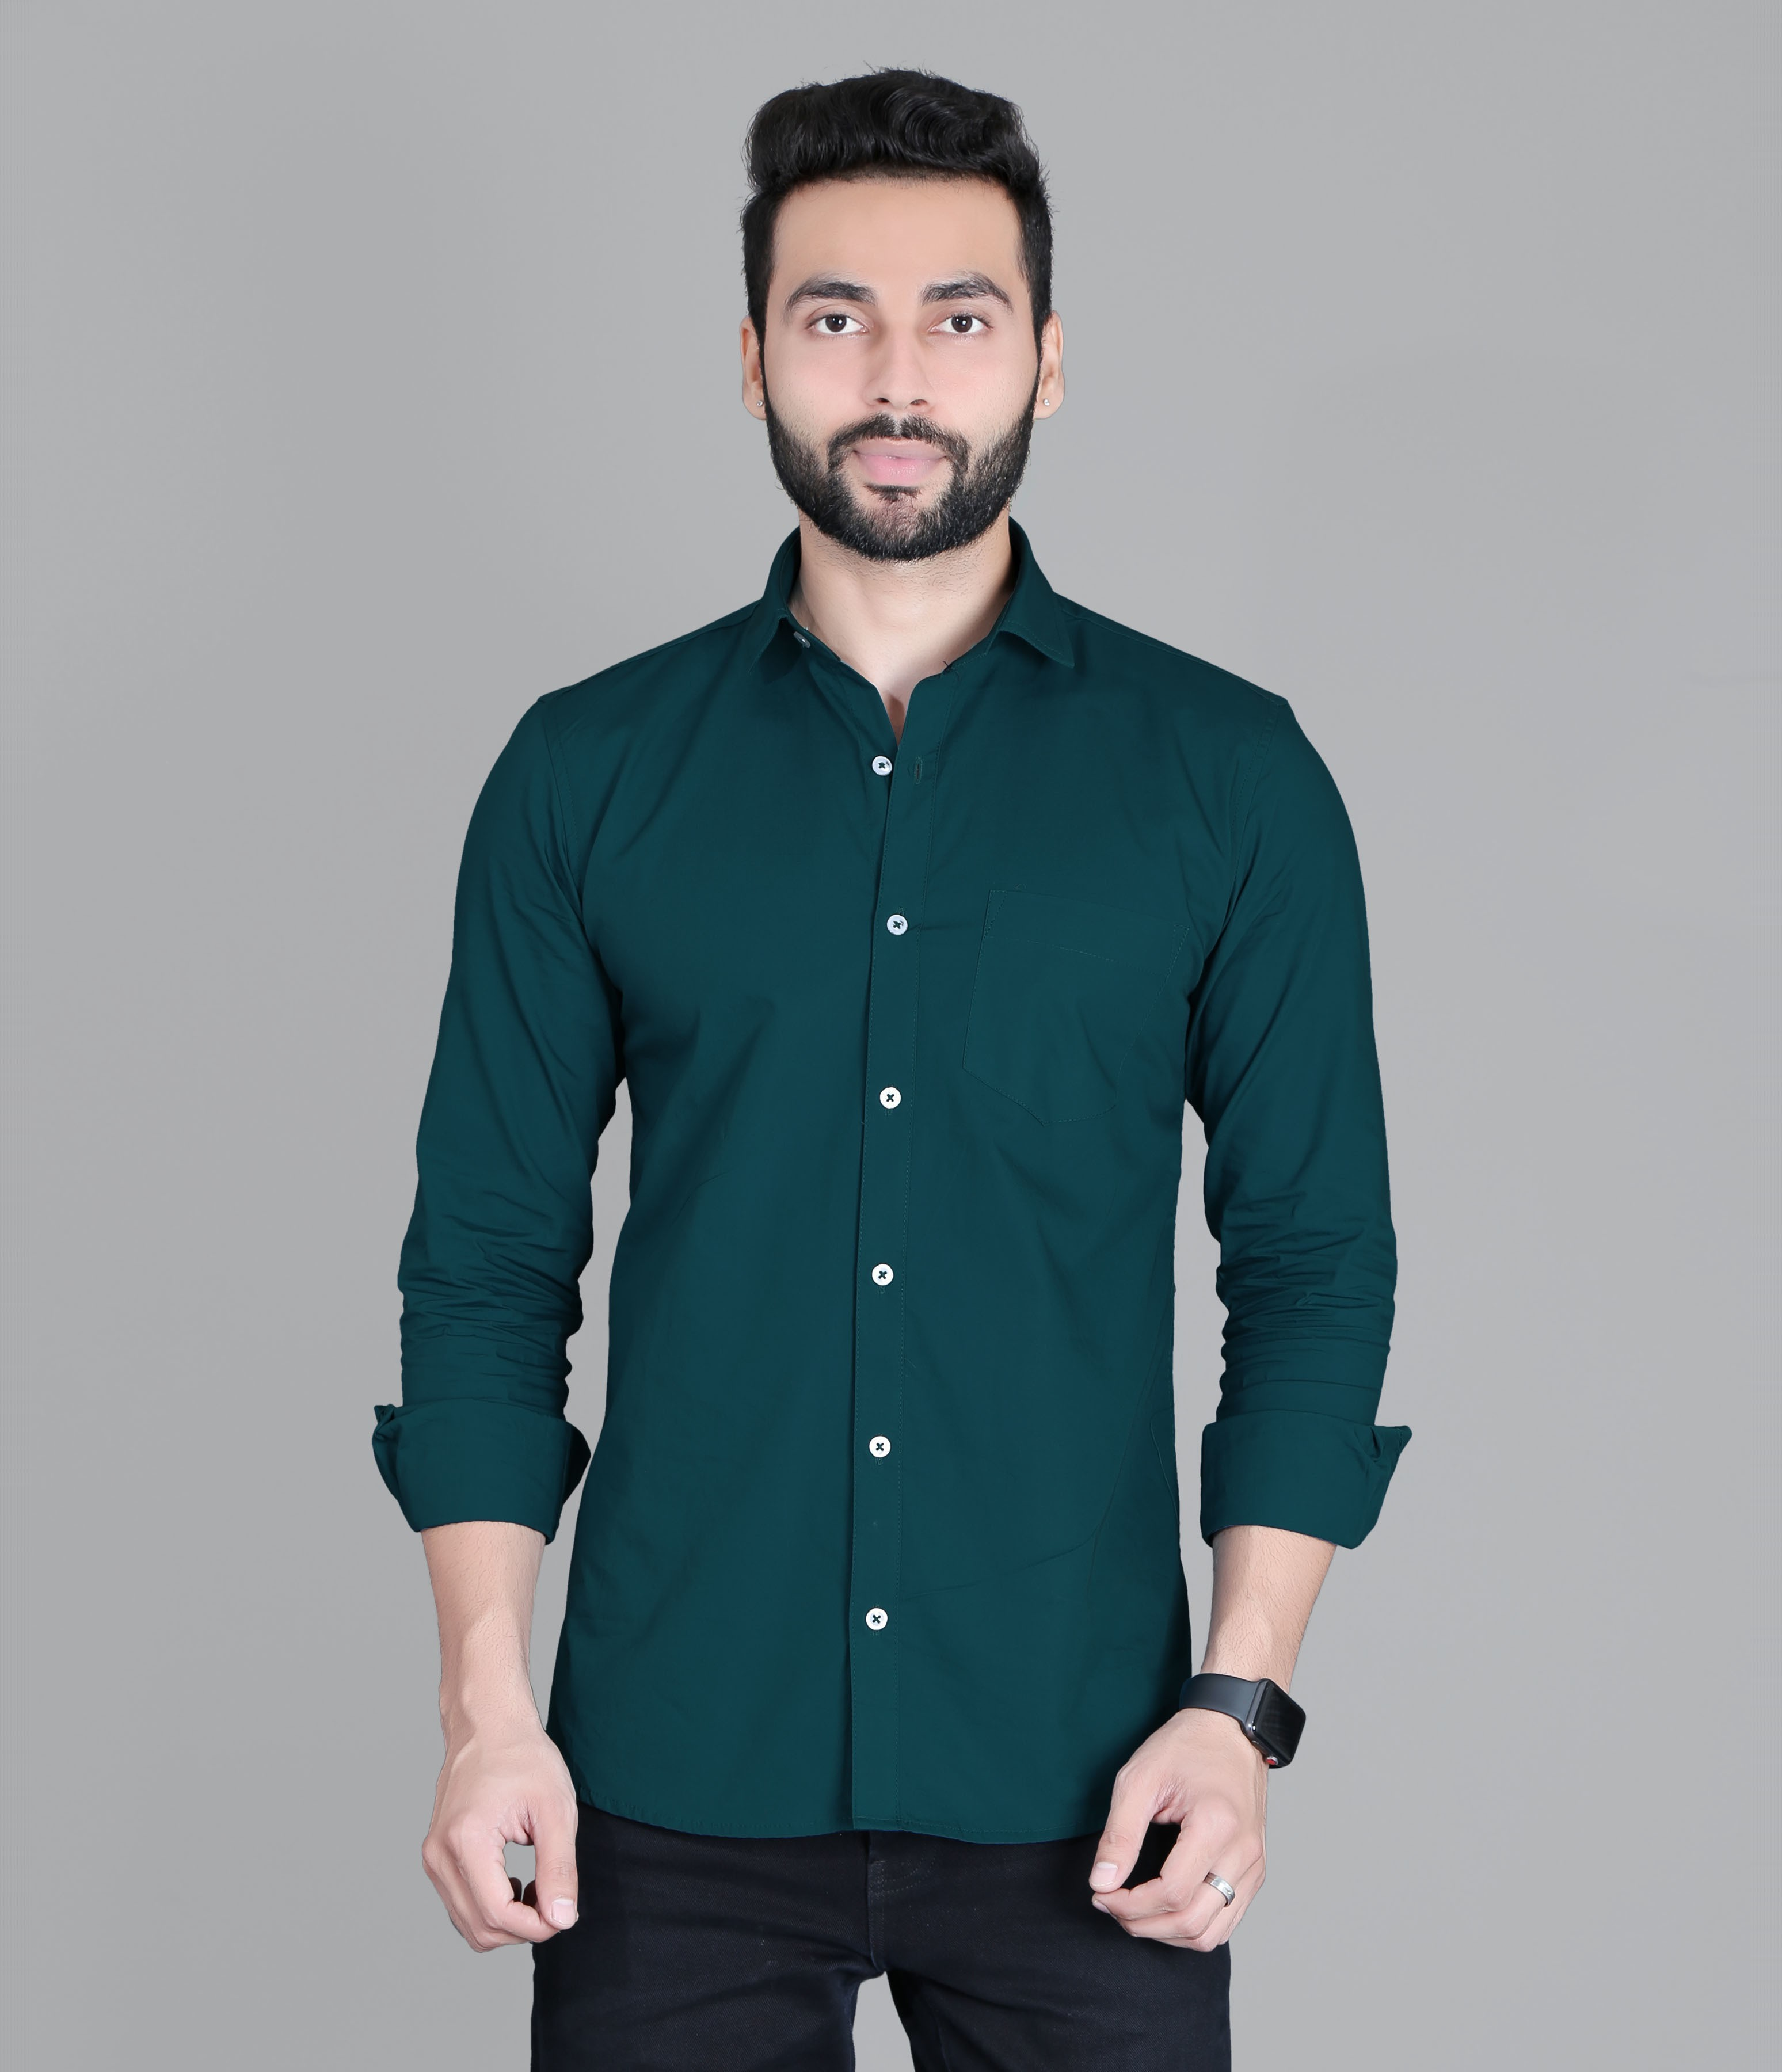 FIFTH ANFOLD Solid Pure Cotton Formal Full Long Sleev Peakok Pure Collar Mens Shirt